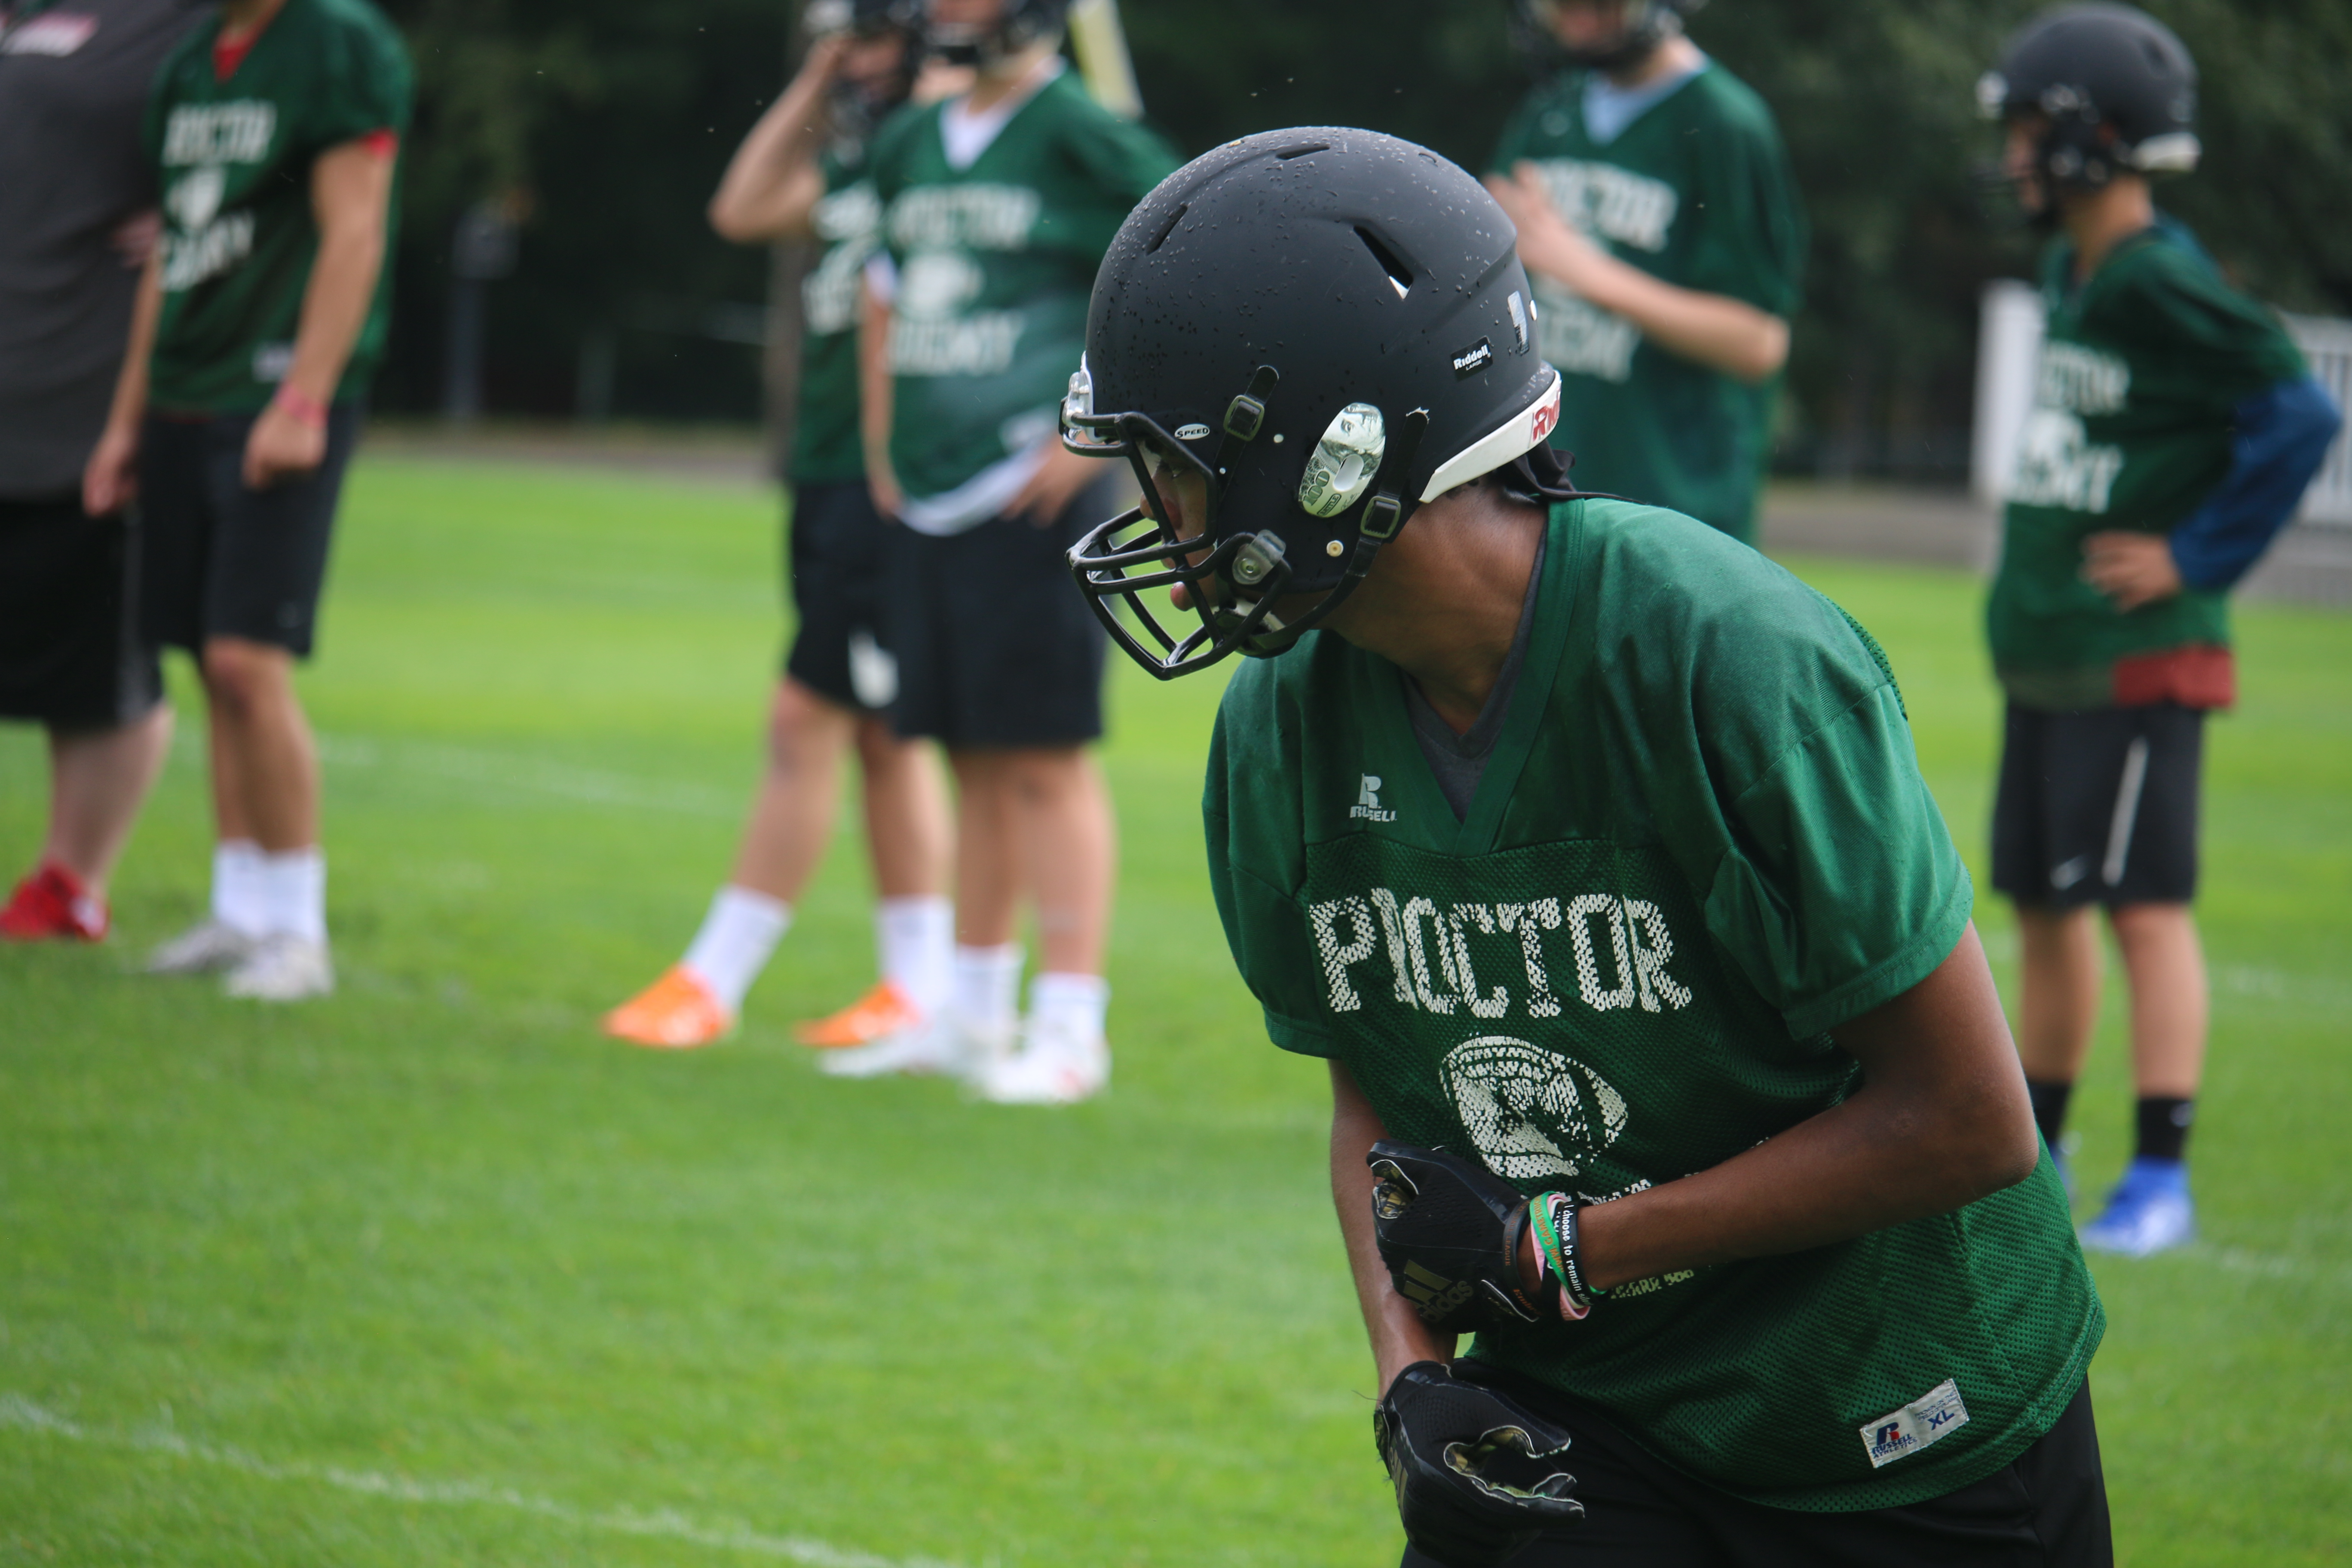 Proctor Academy Prep School Athletics